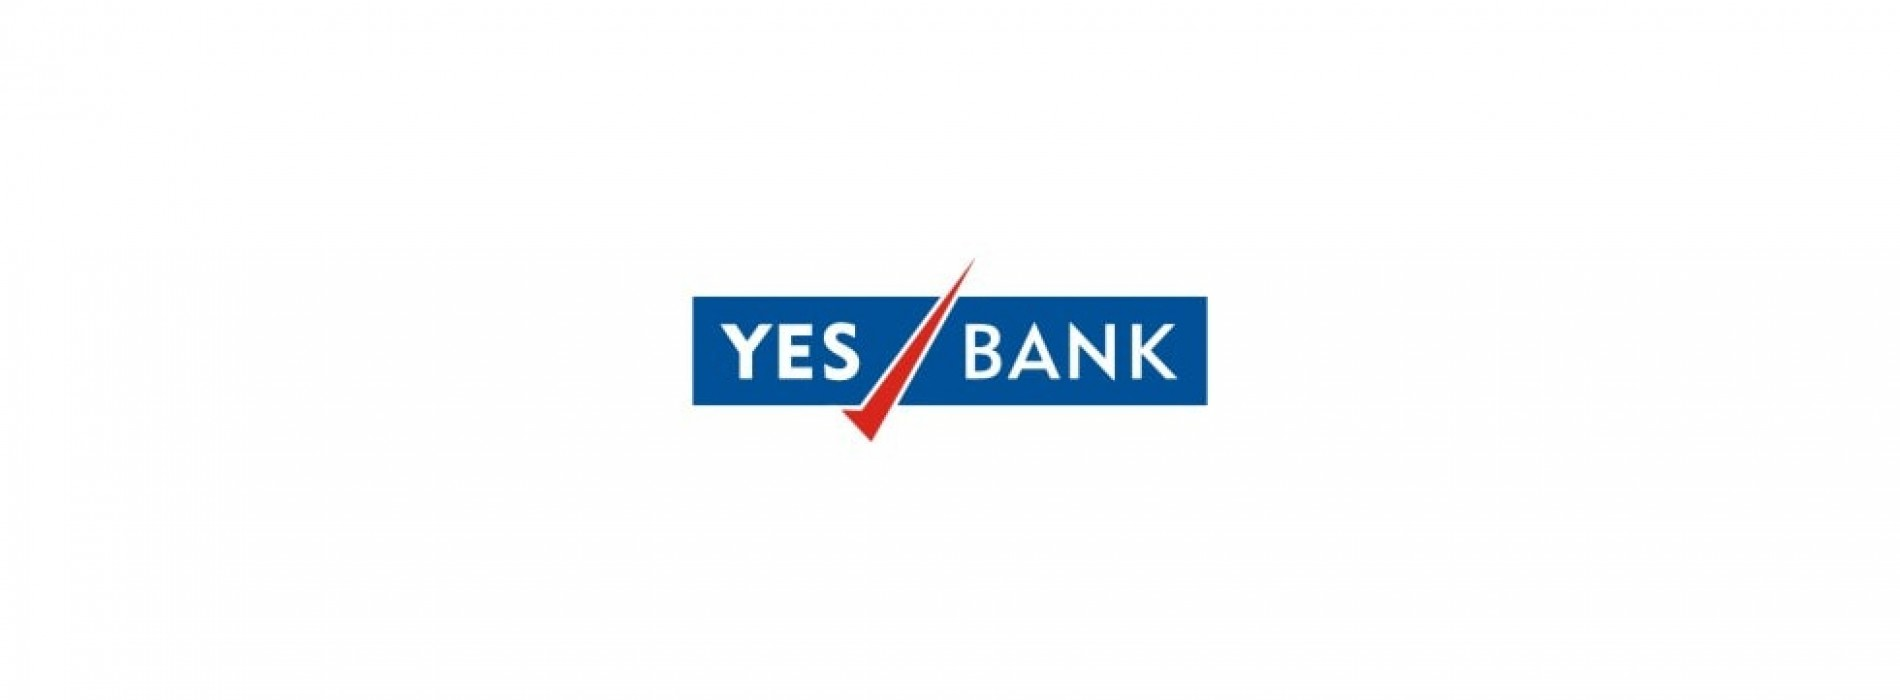 Yes Bank wins National Tourism Award for 'Most Responsible Tourism Project/Initiative'